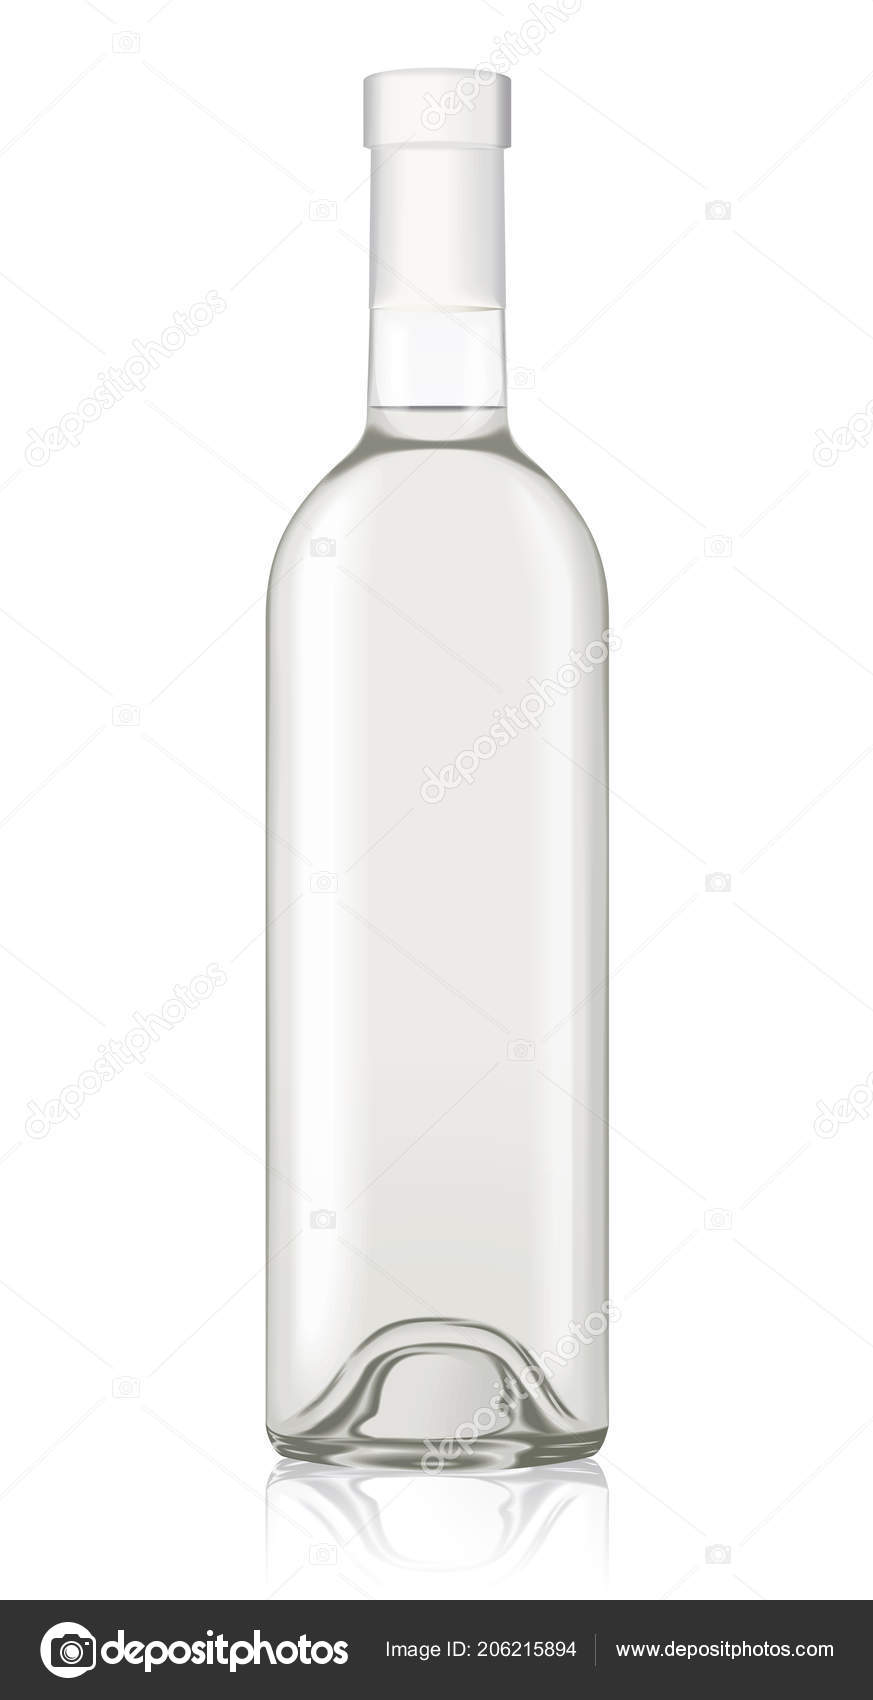 vector wine bottle mockup template isolated drink alcohol beverage